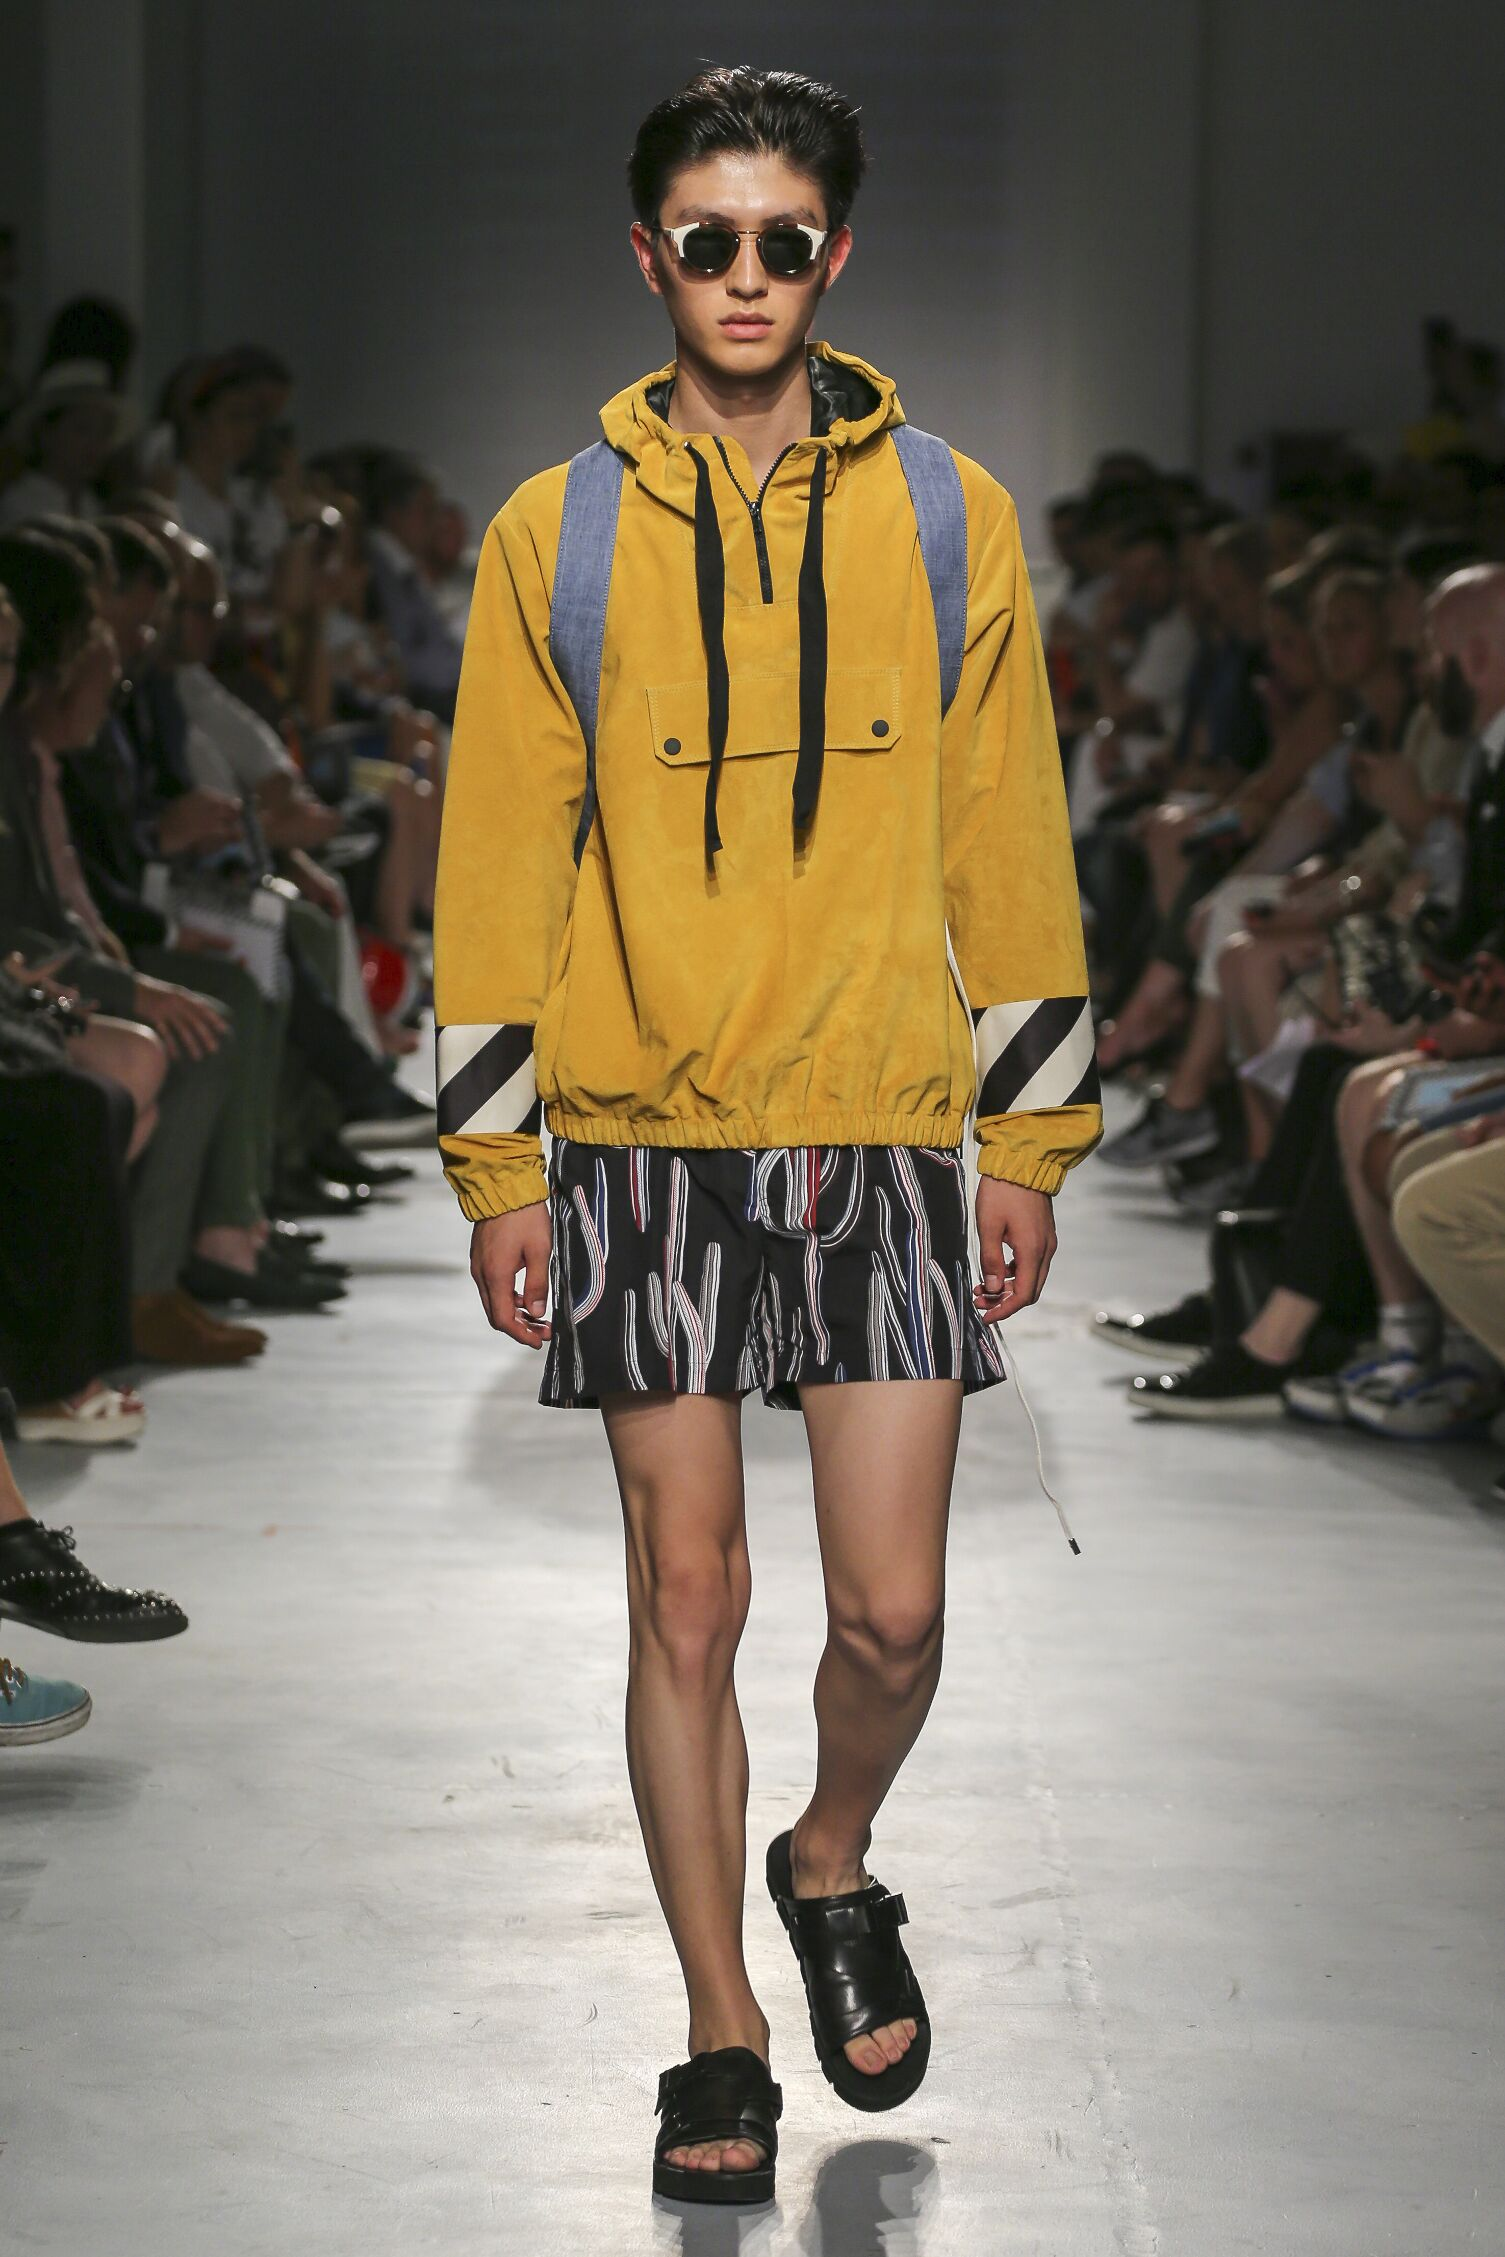 Fashion Man Model Msgm Catwalk